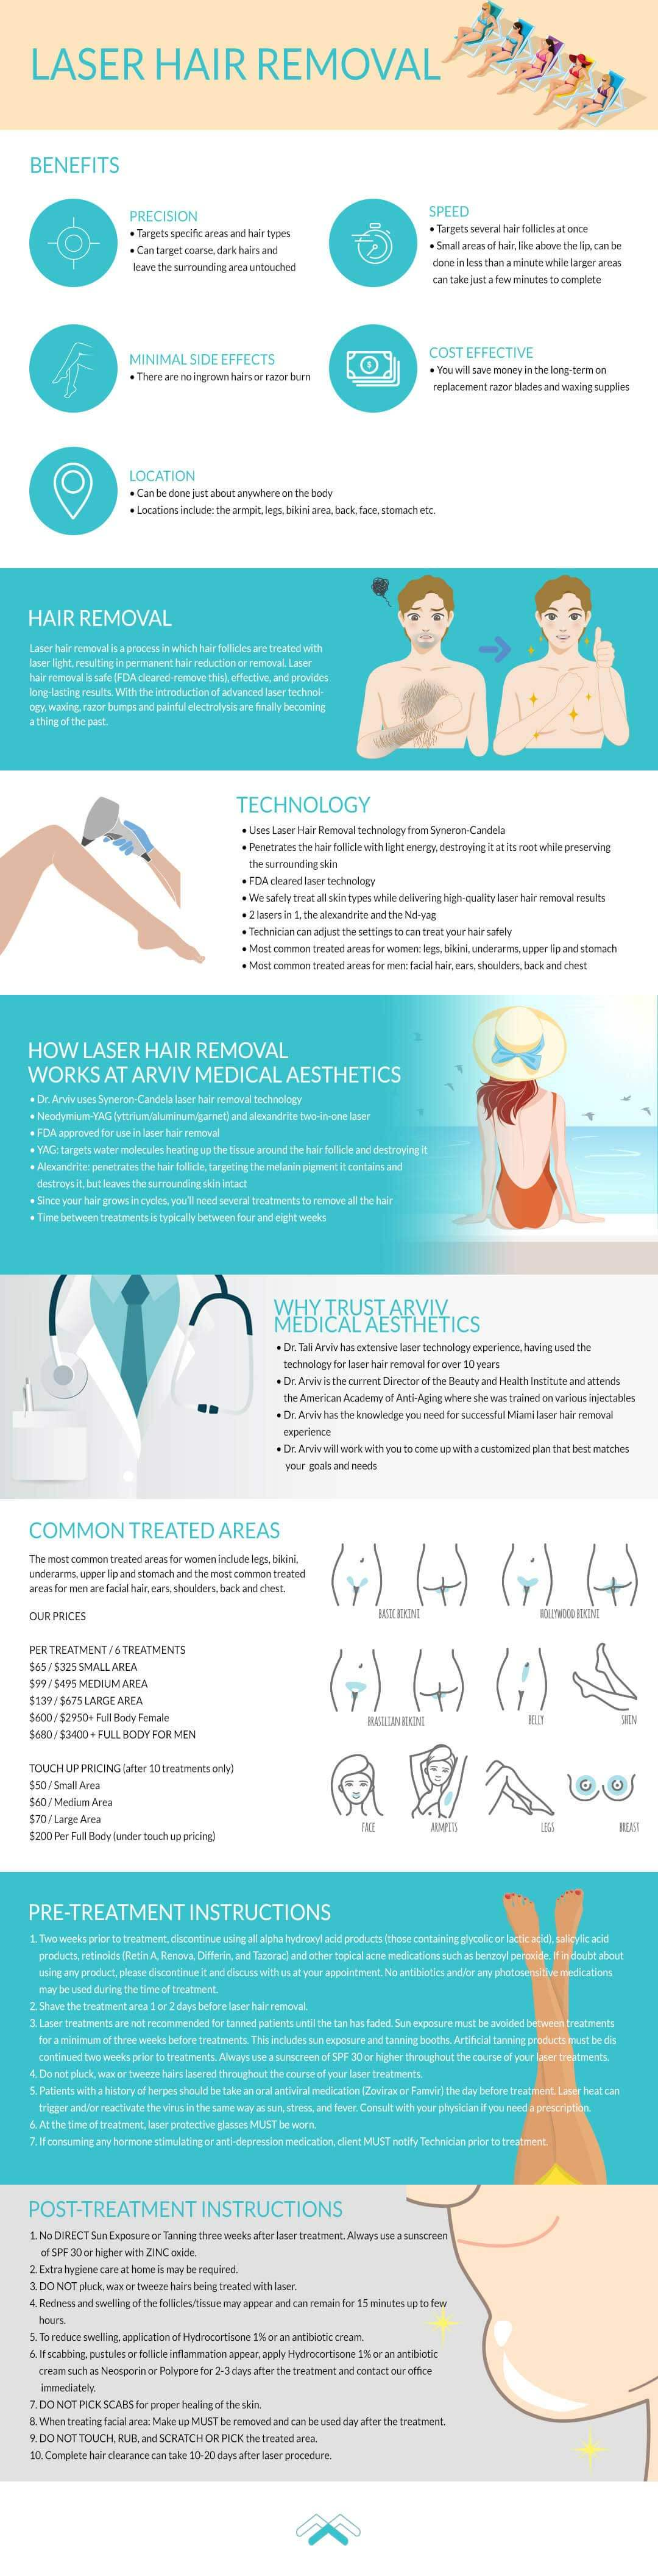 Miami Laser Hair Removal | Prices & Info | Arviv Medical